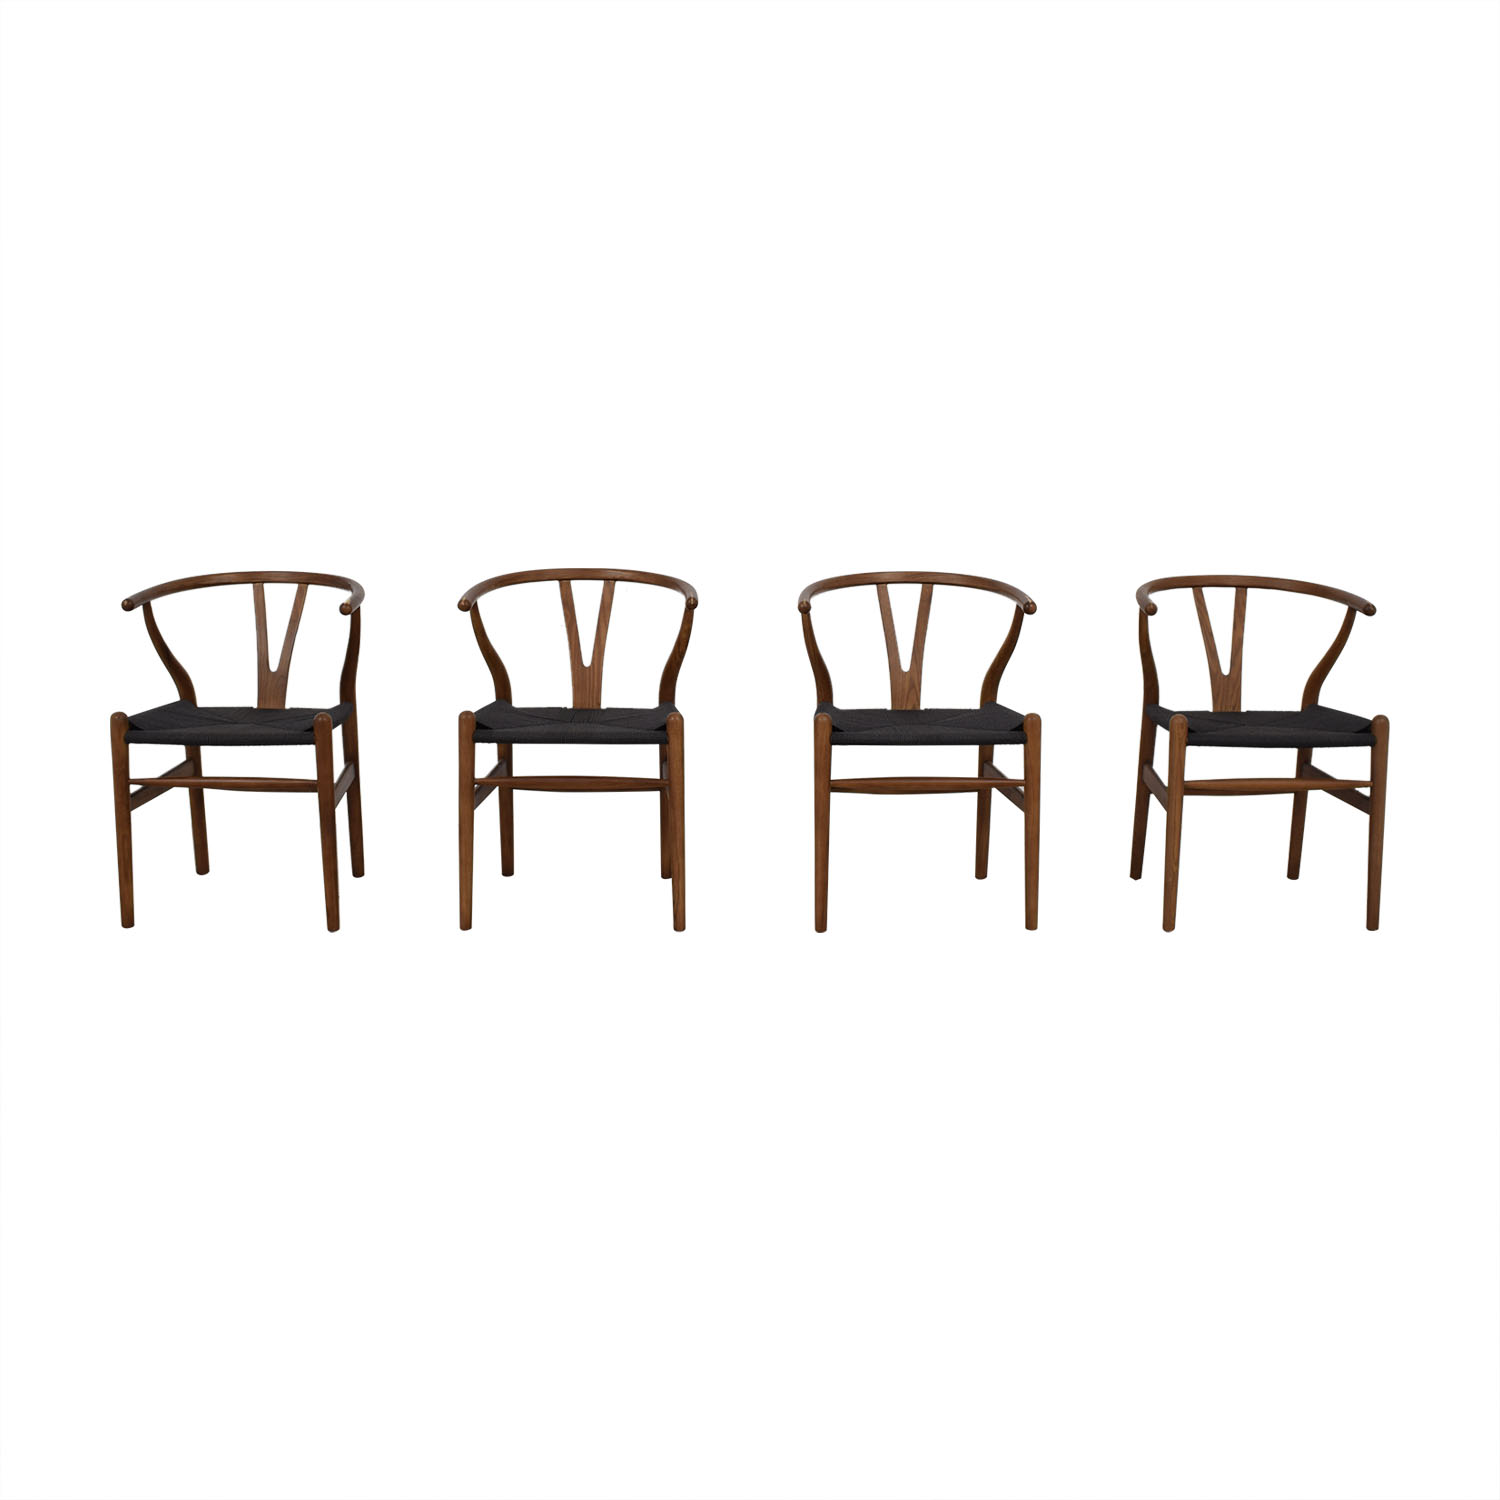 Rove Concepts Rove Concepts Wishbone Chairs Chairs